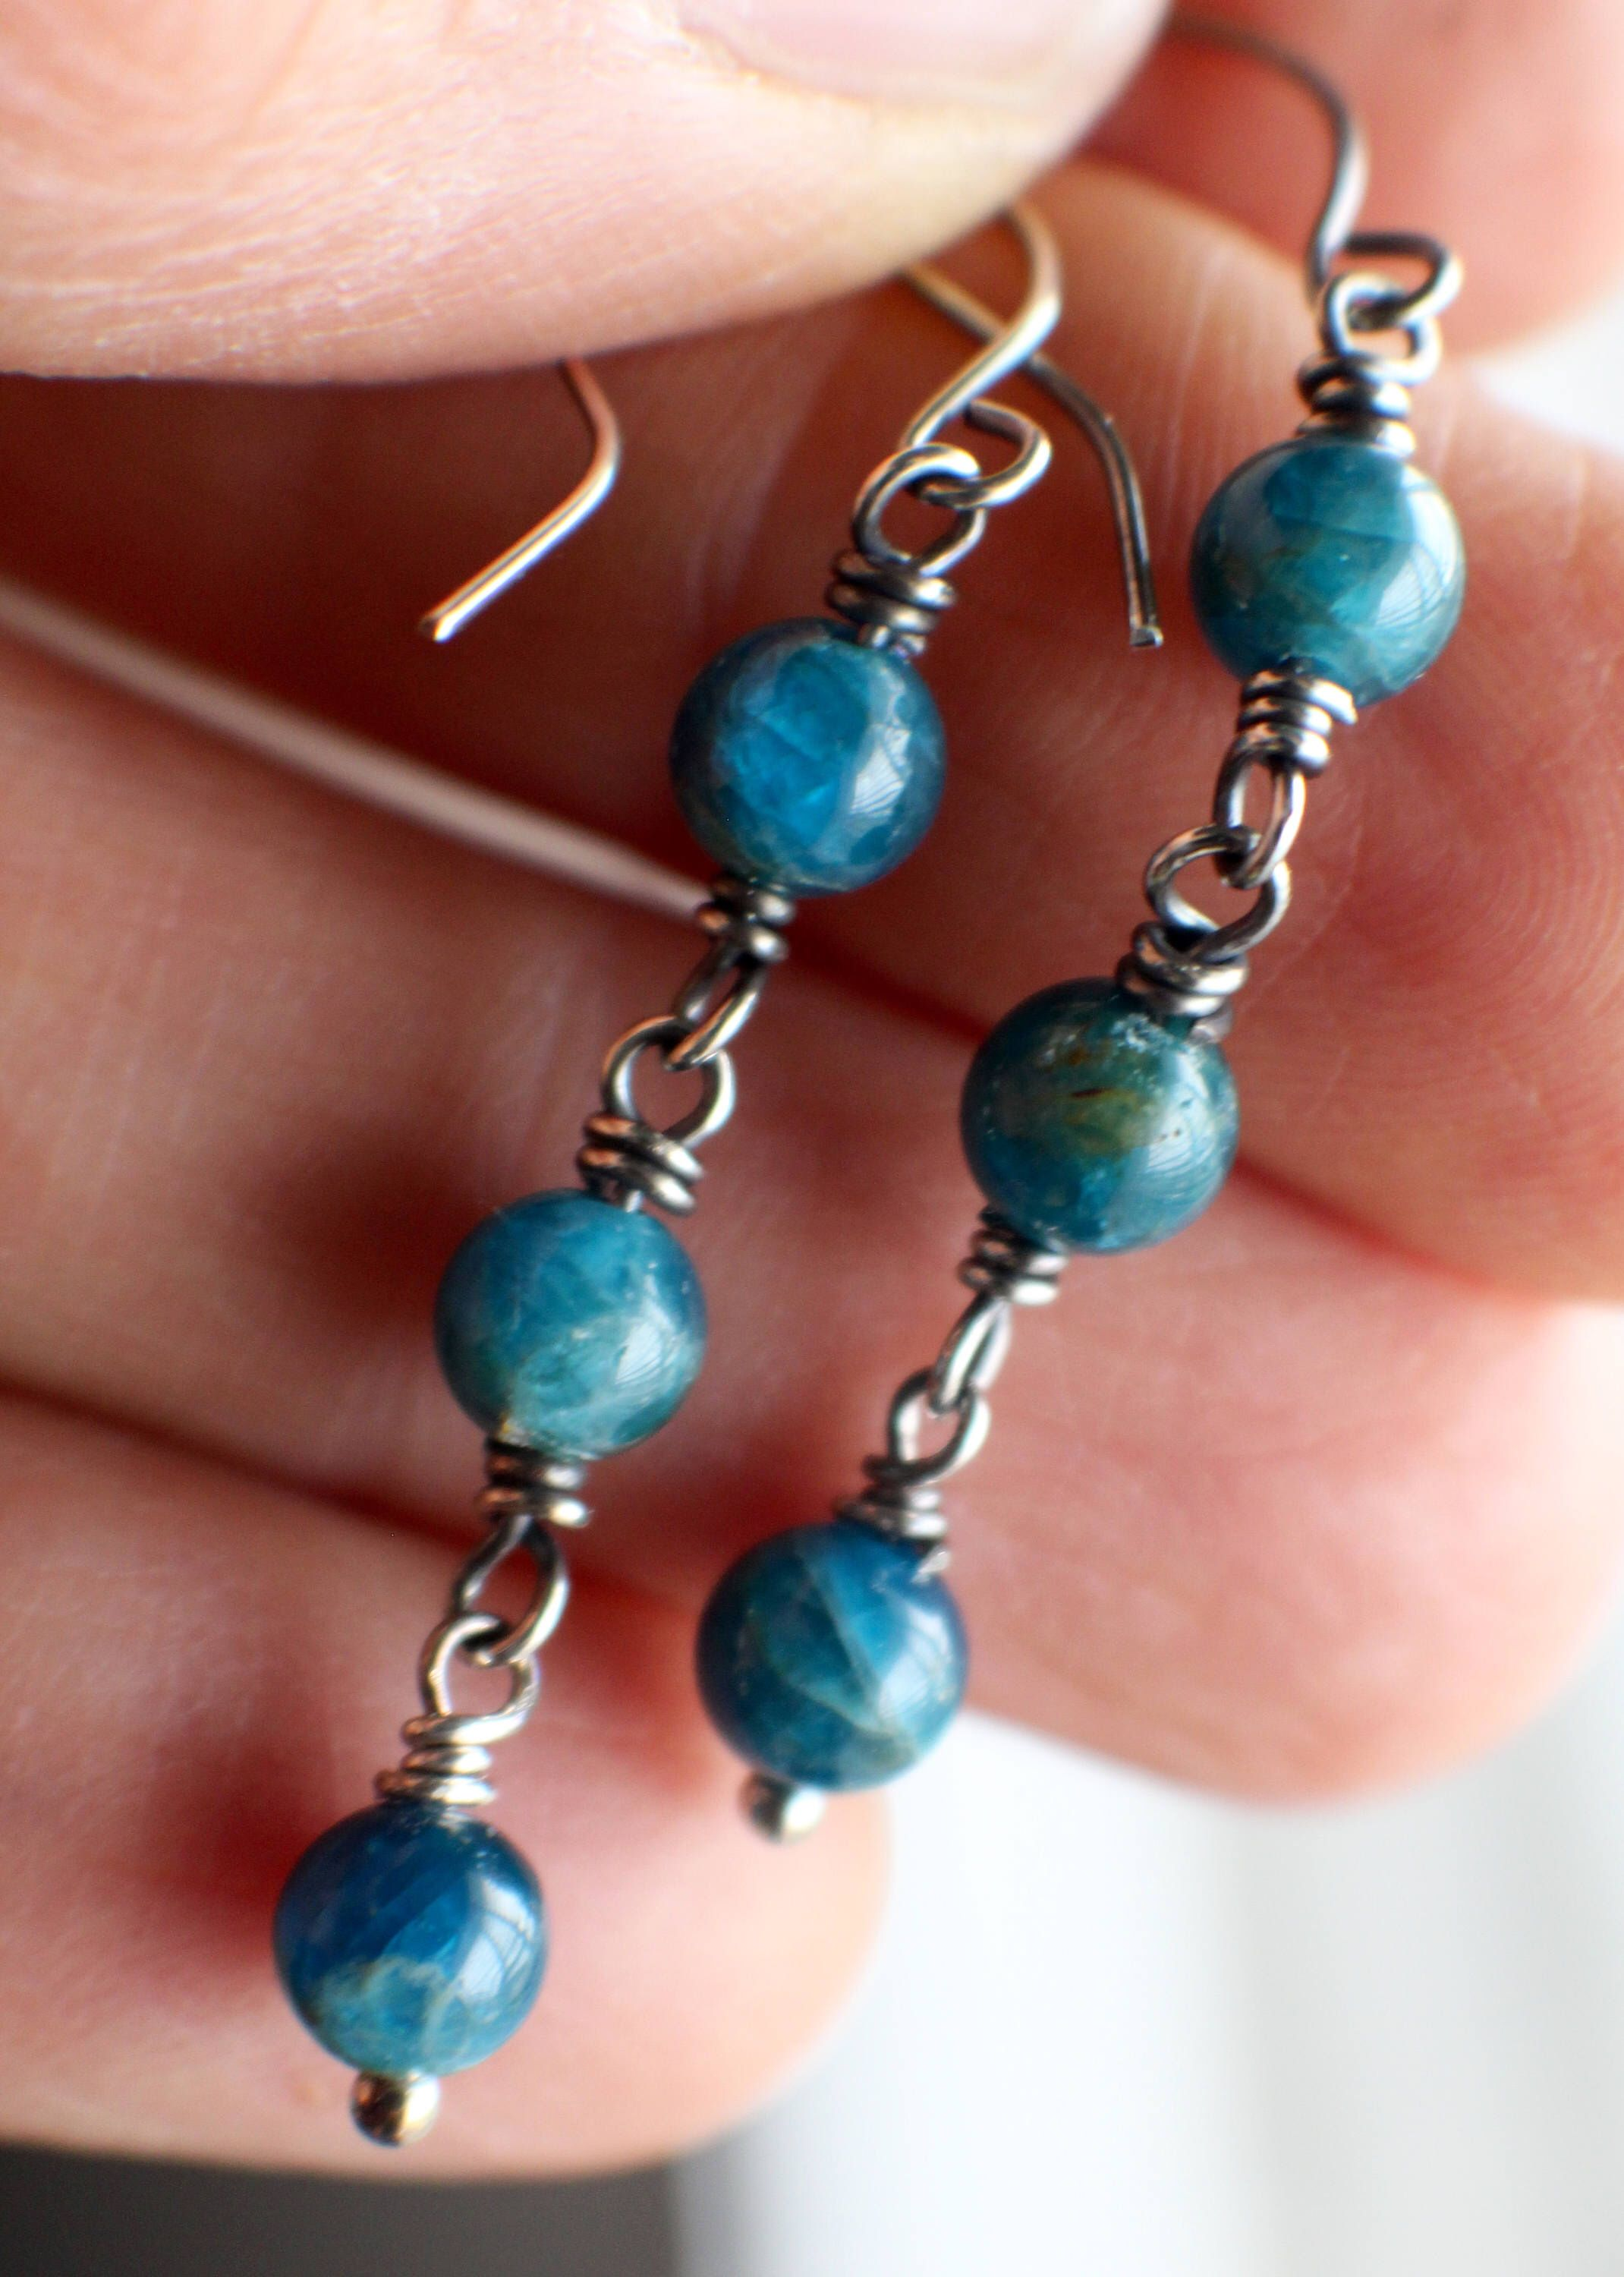 apatite pin silver earrings teal gemstones oxidized gemstone jewelry sterling